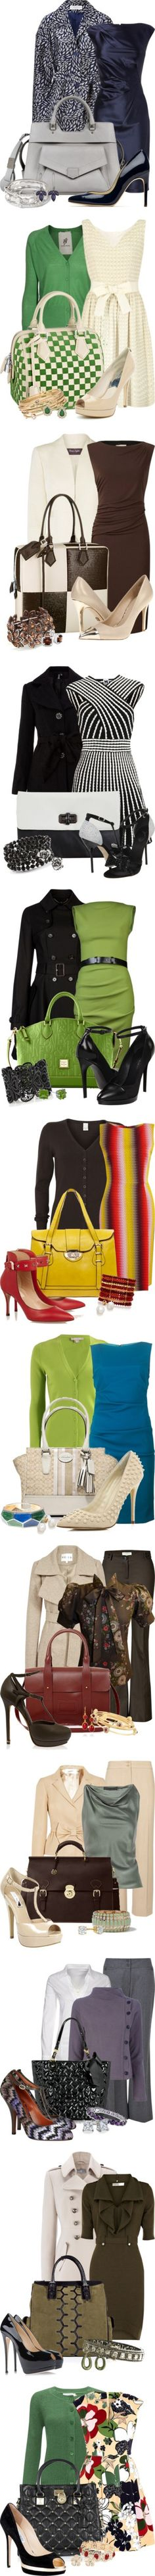 """Business Classy"" by happygirljlc 鉂?liked on Polyvore"